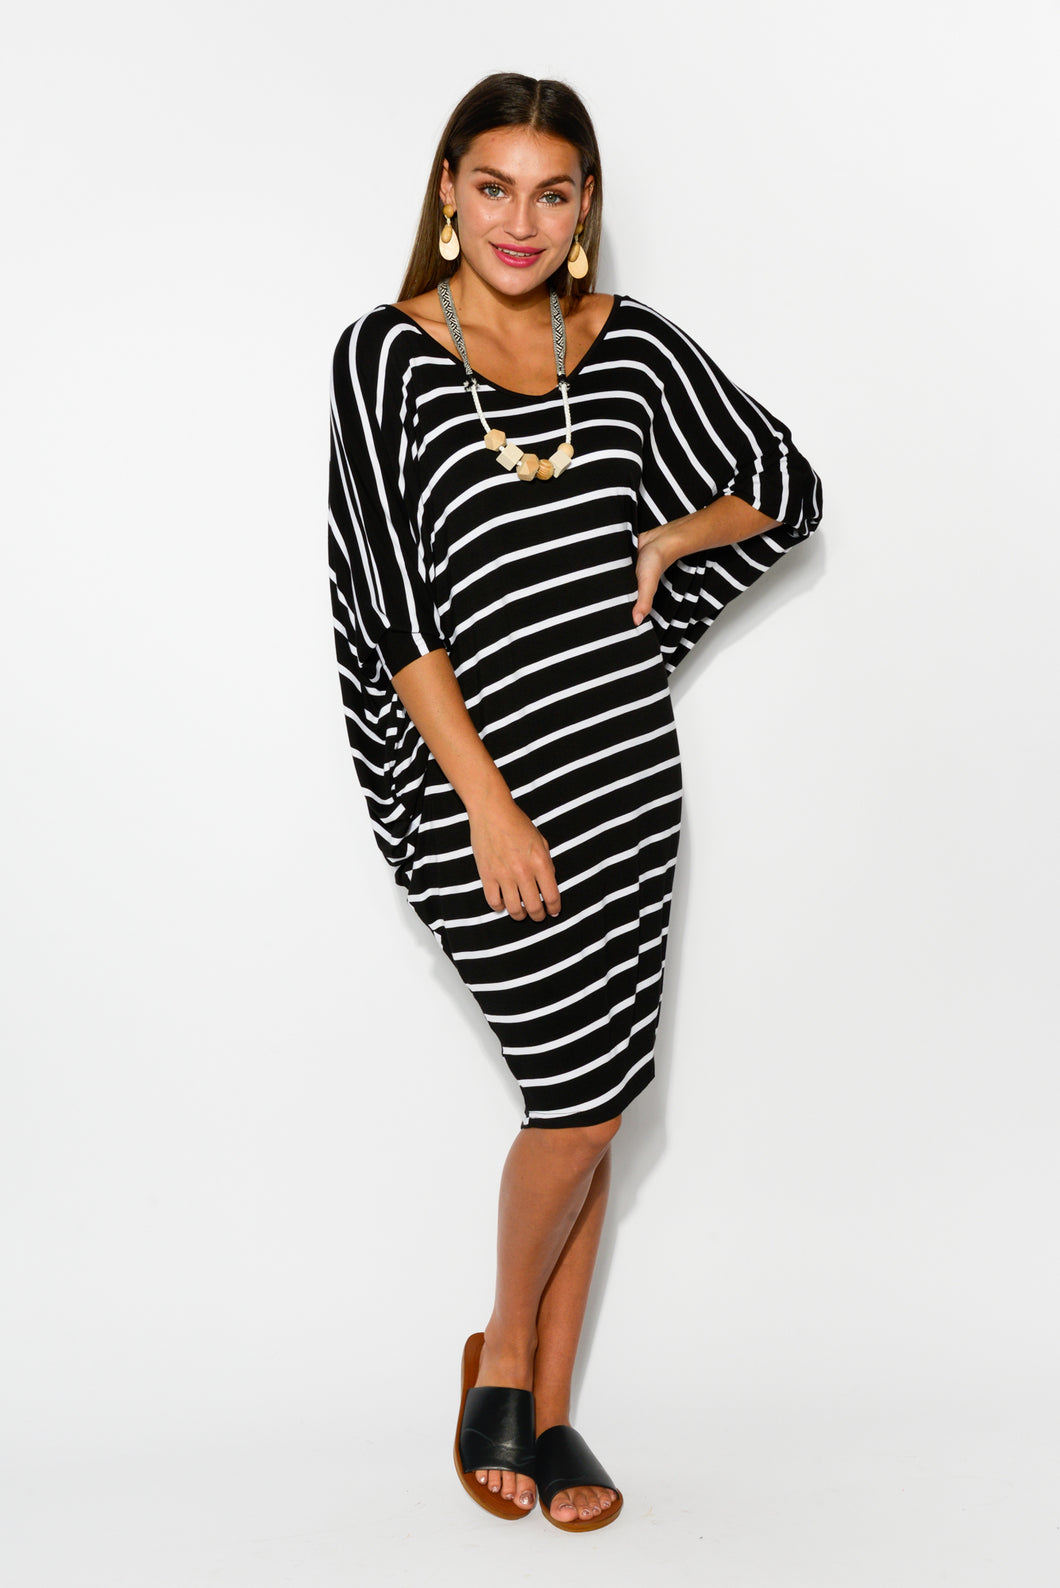 Tia Black Striped Batwing Dress